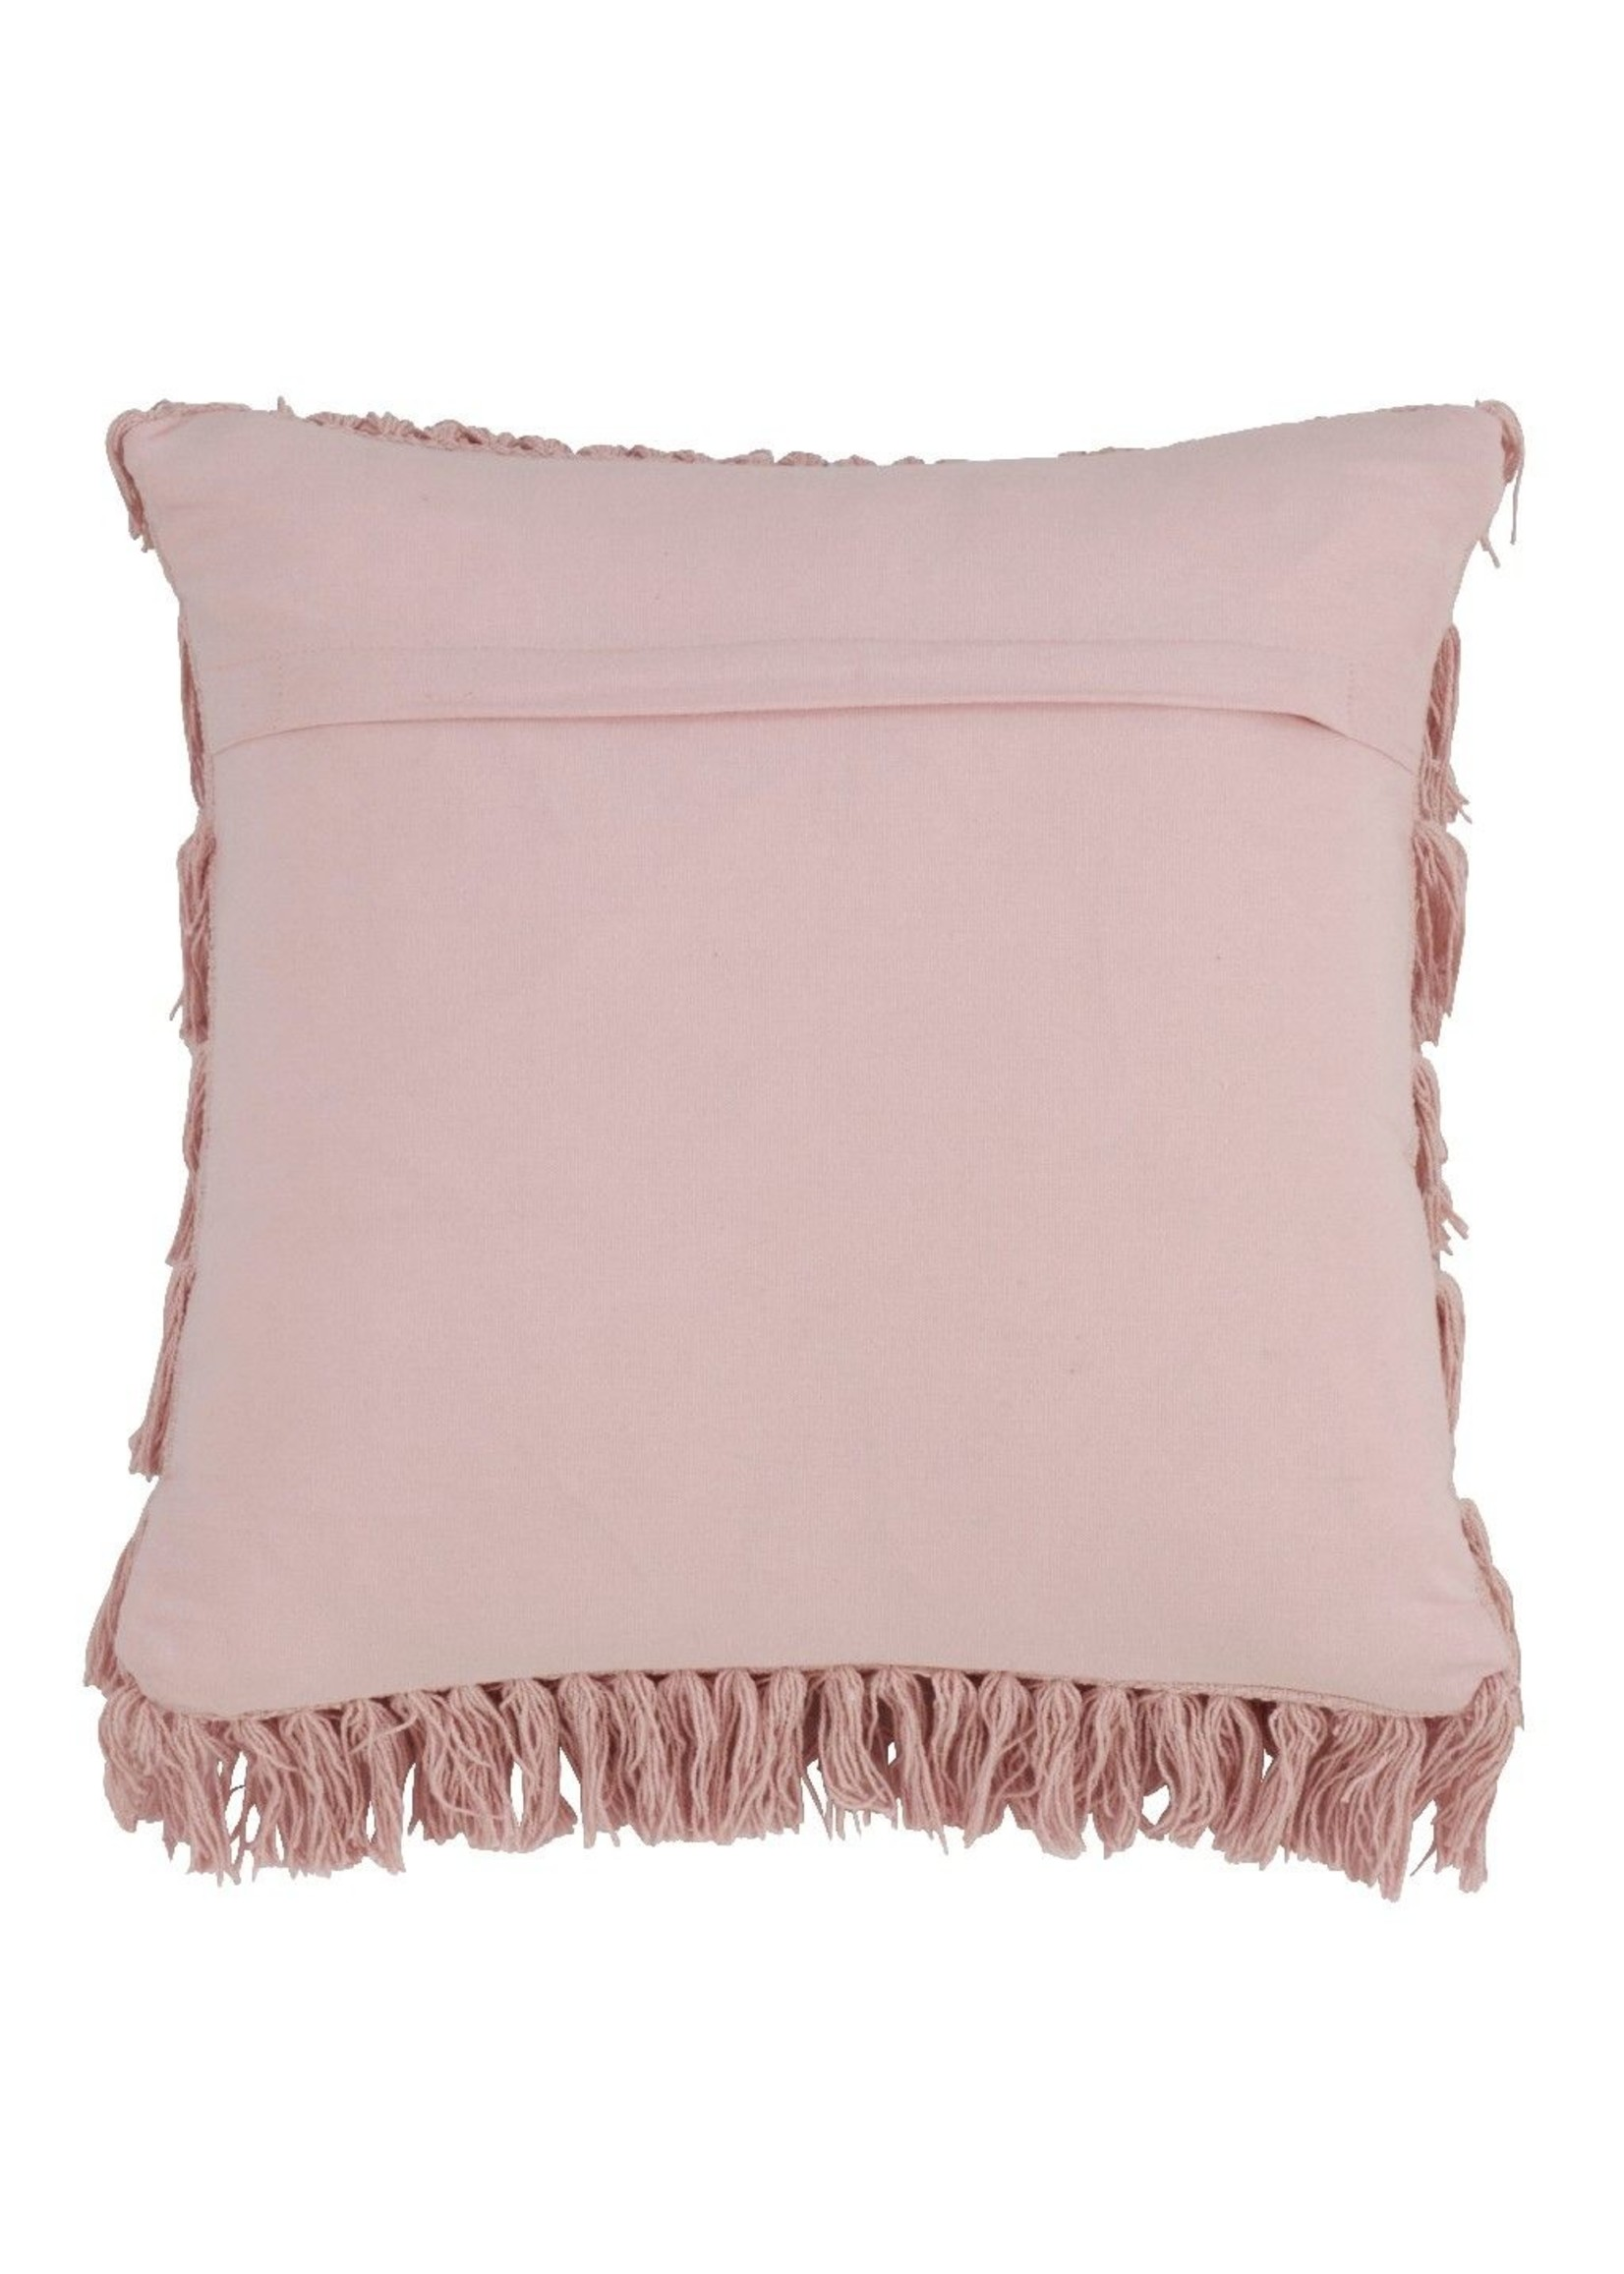 Saro Woven Fringes Pillow Down Filled - Rose